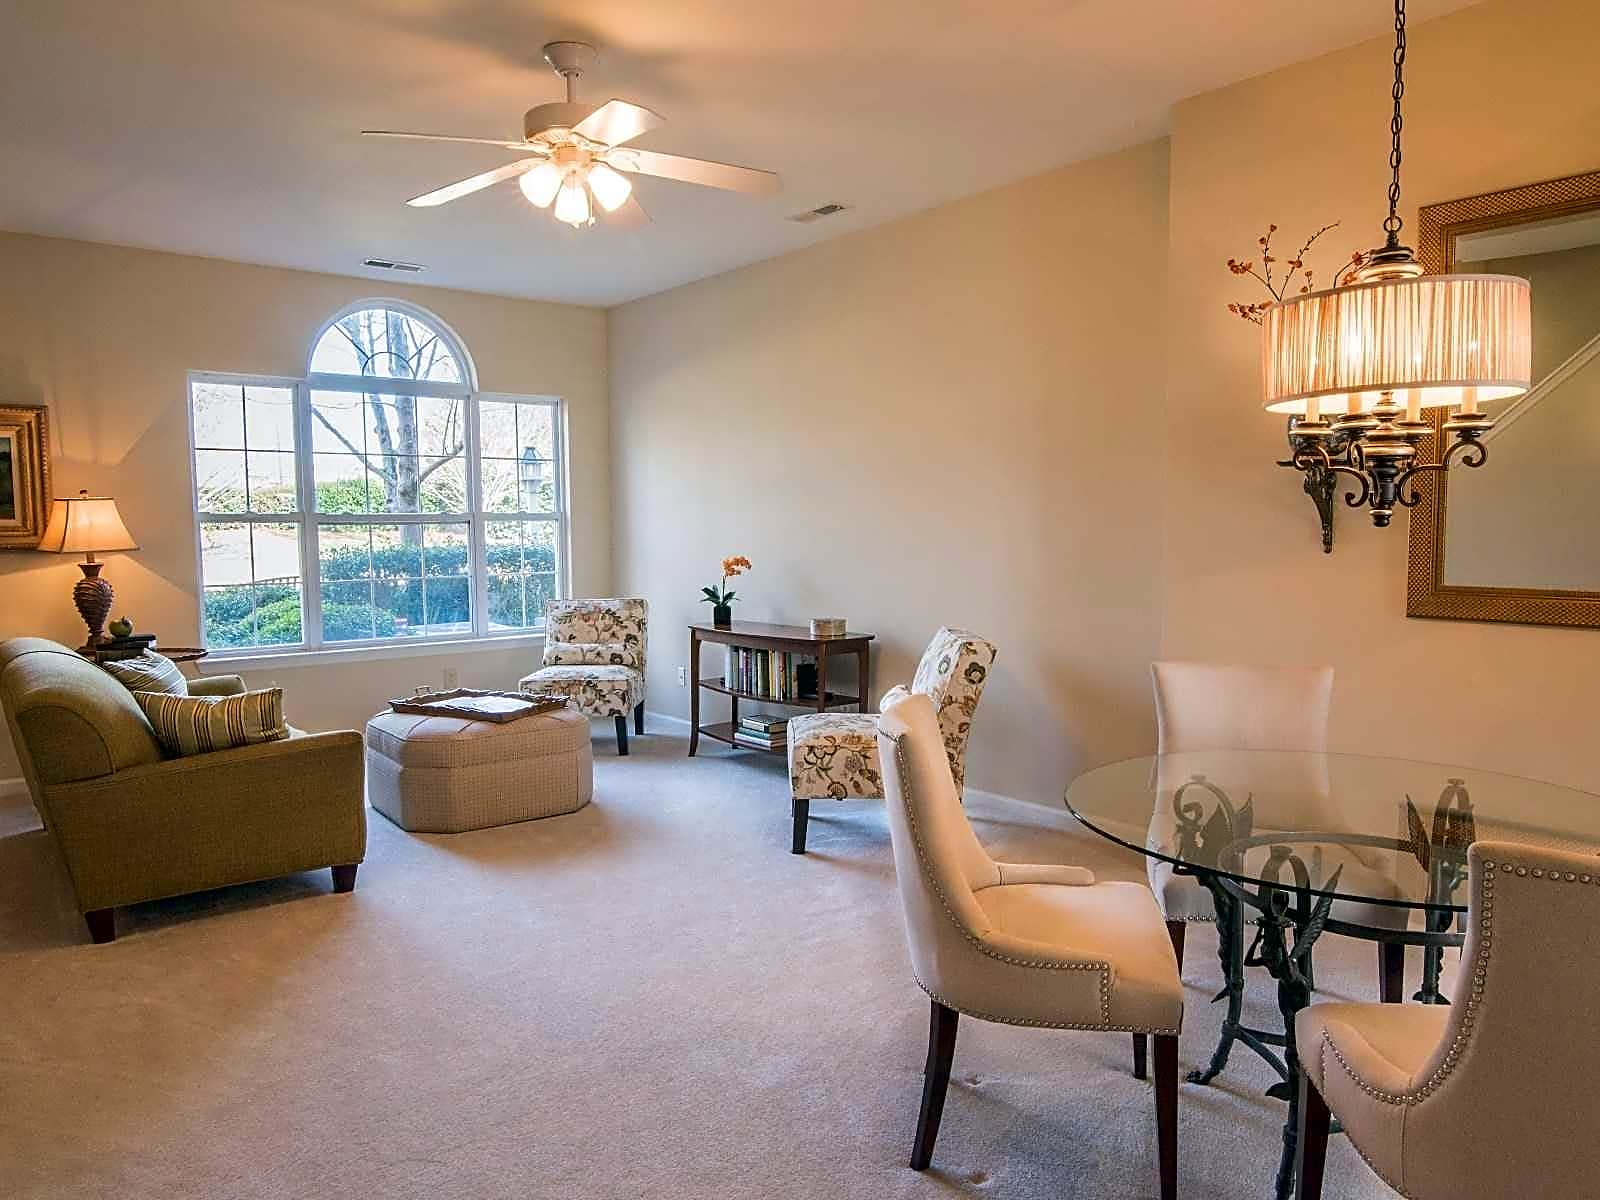 Apartments Near UNCW Barclay Place for University of North Carolina-Wilmington Students in Wilmington, NC